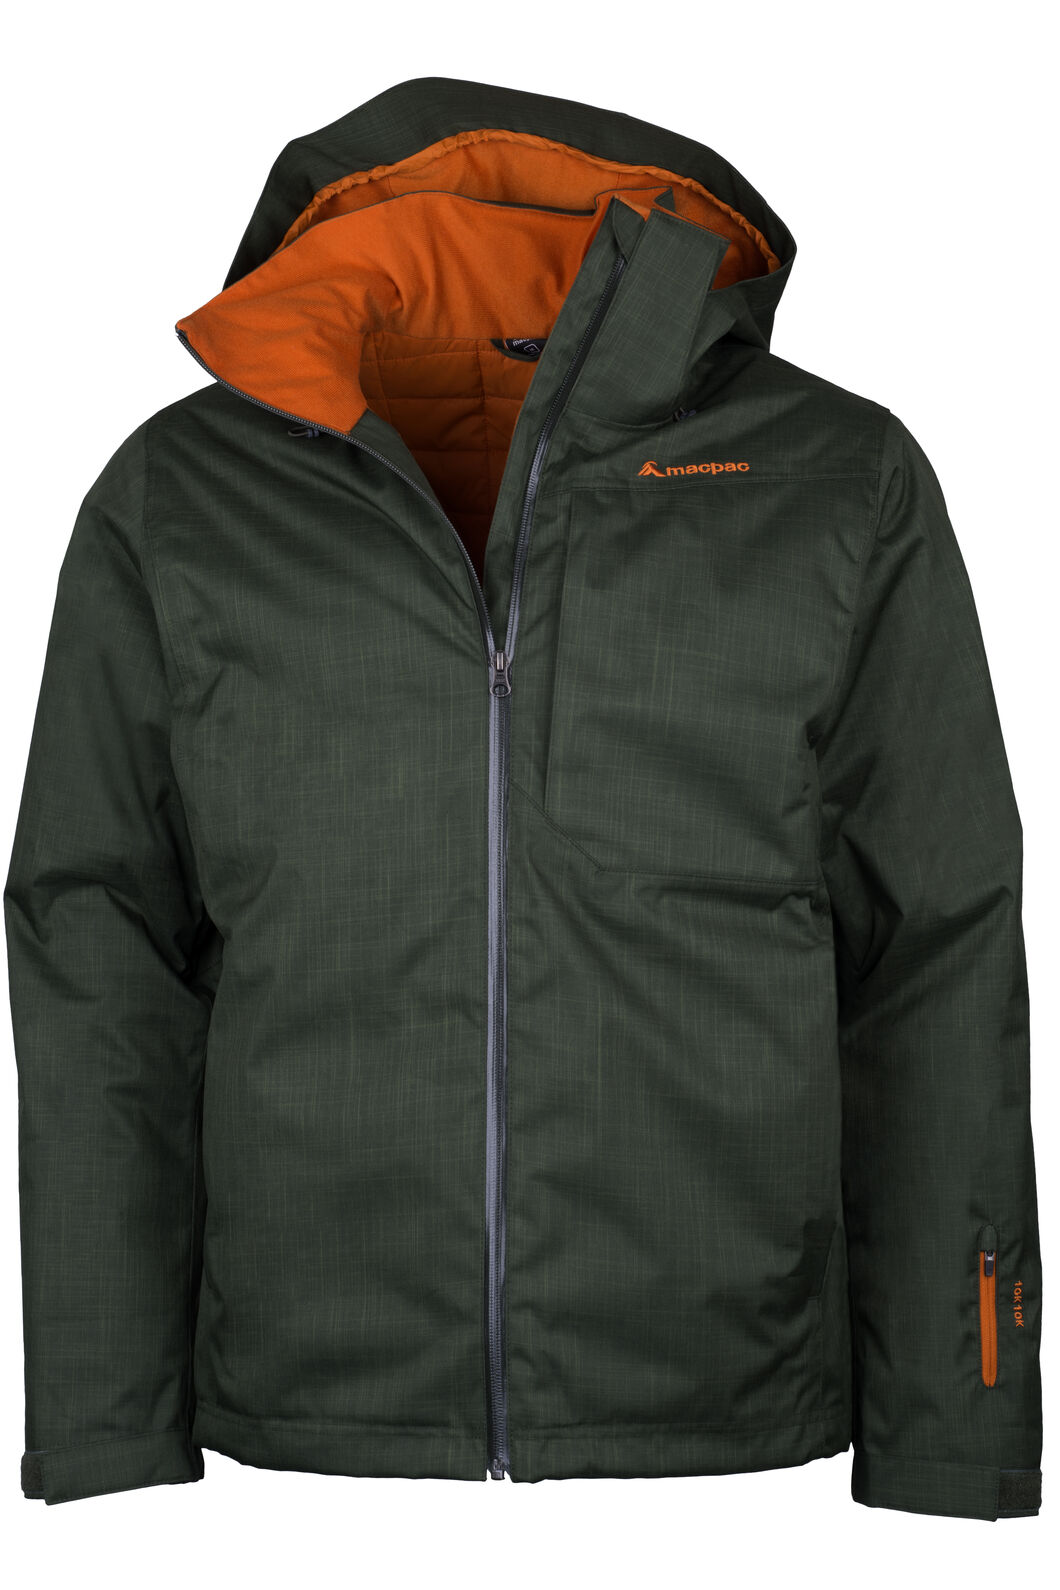 Macpac Powder Reflex™ Ski Jacket — Men's, Kombu Green, hi-res